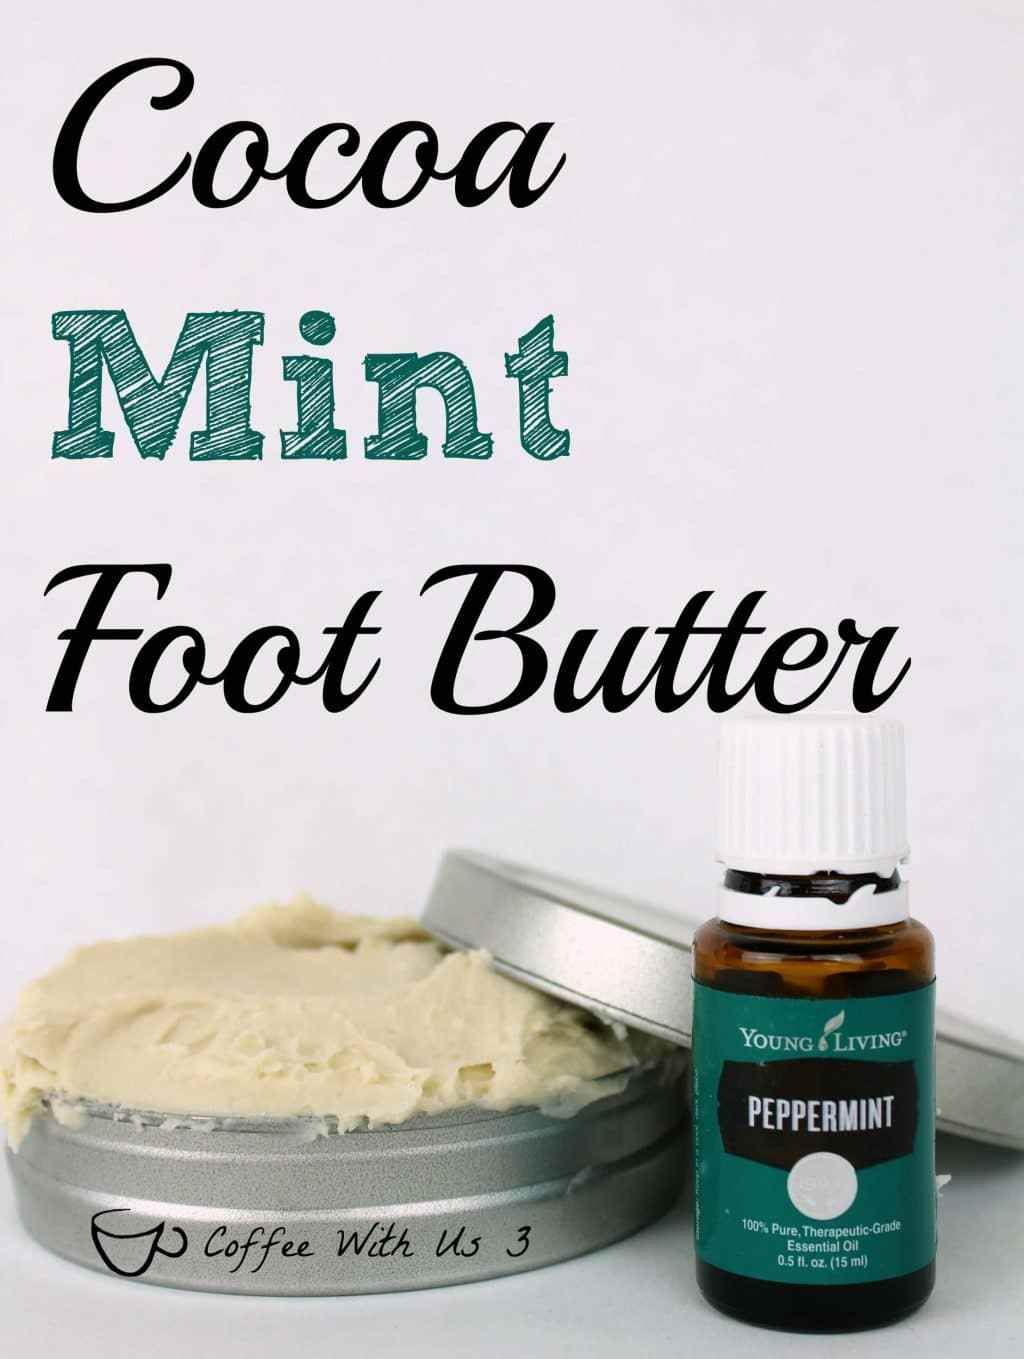 Cocoa mint foot butter is a luxurious butter to help